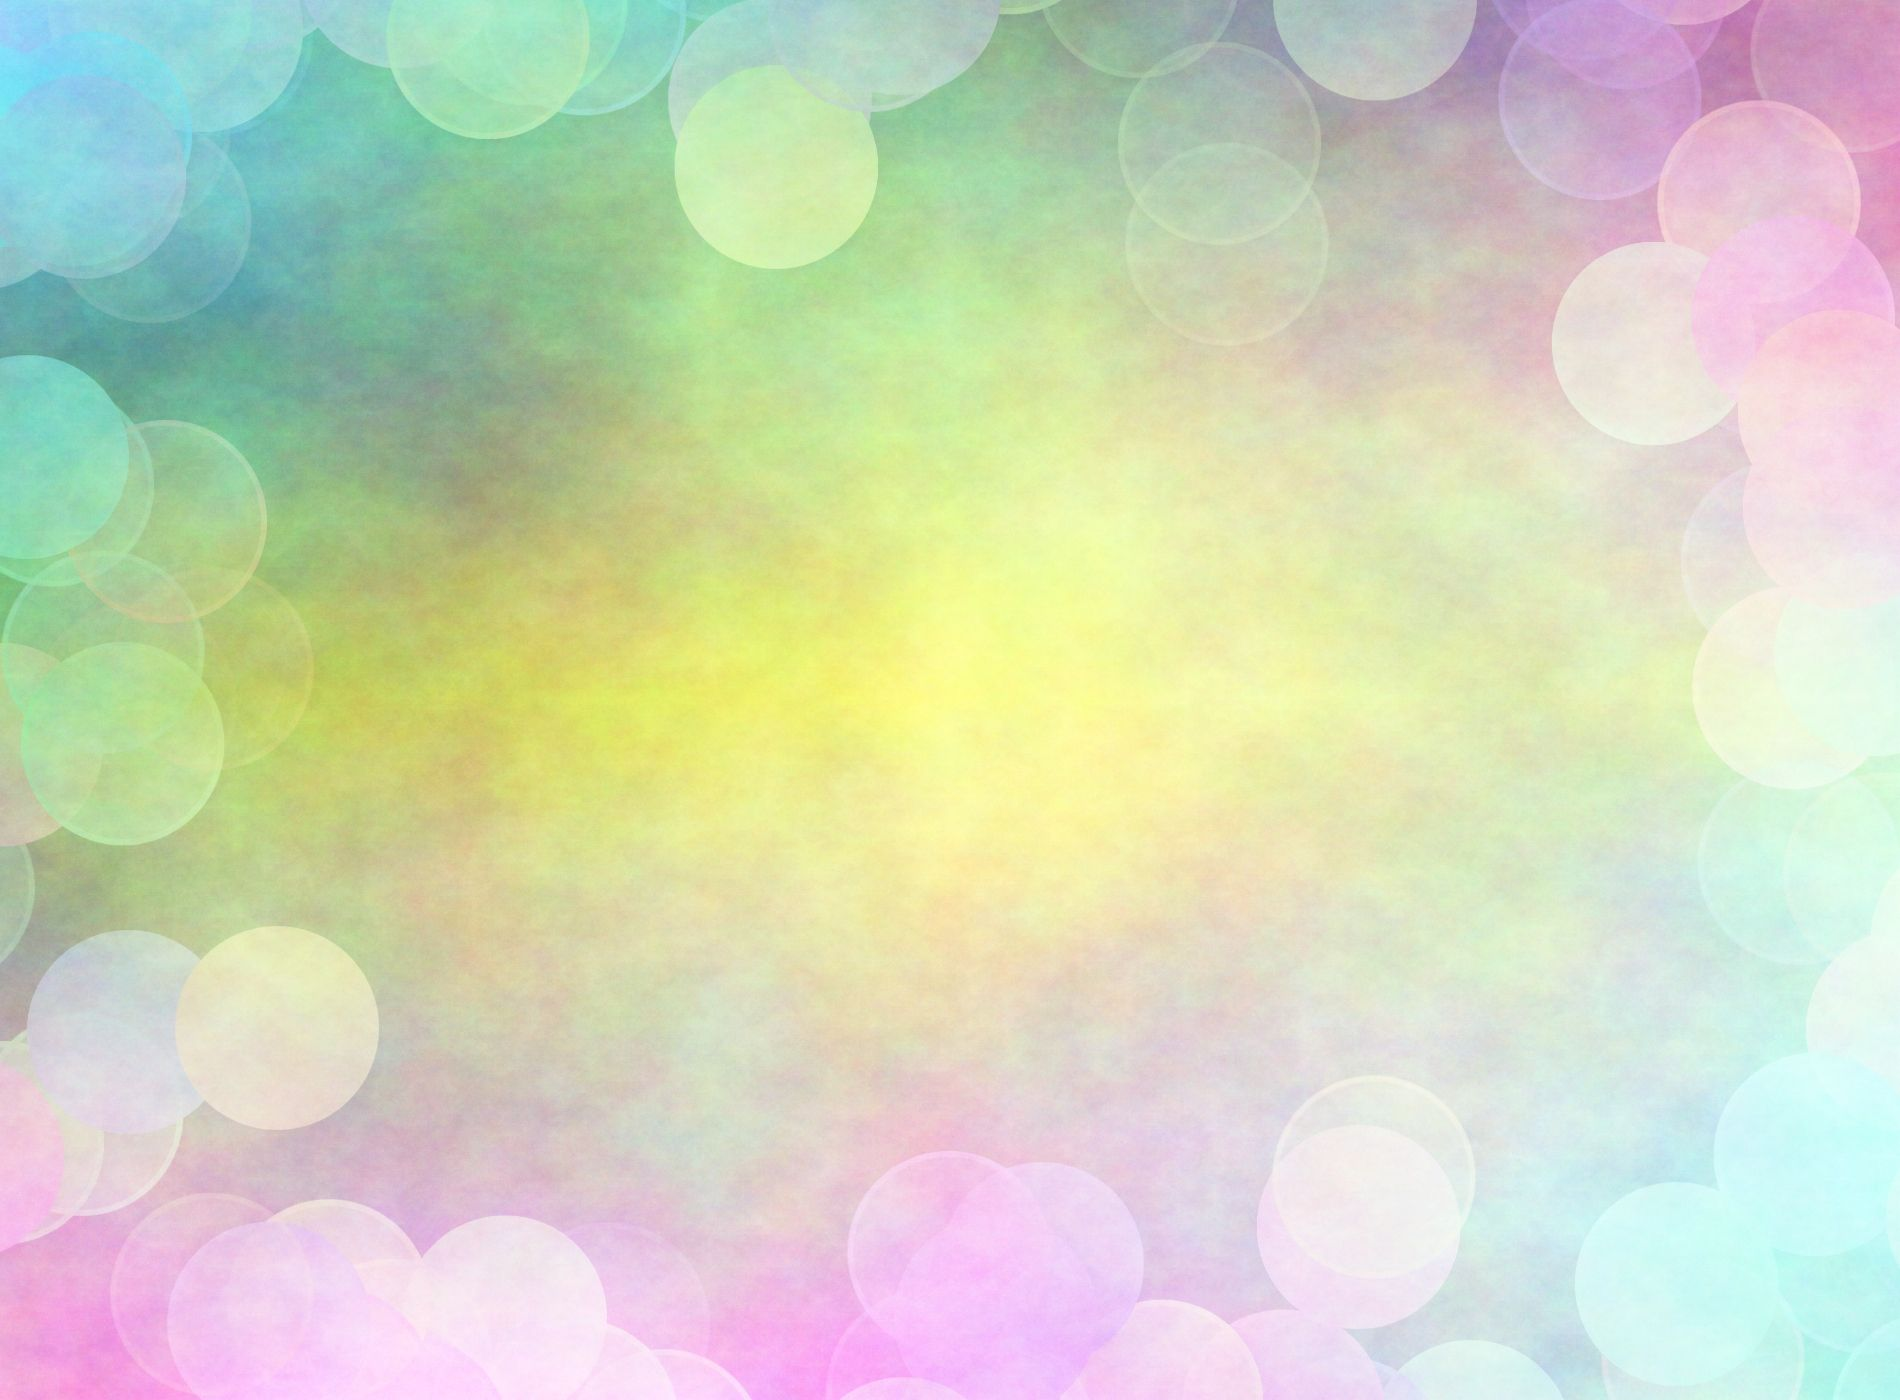 Shimmering Pastel Rainbow Backgrounds | Pastel Rainbow ...